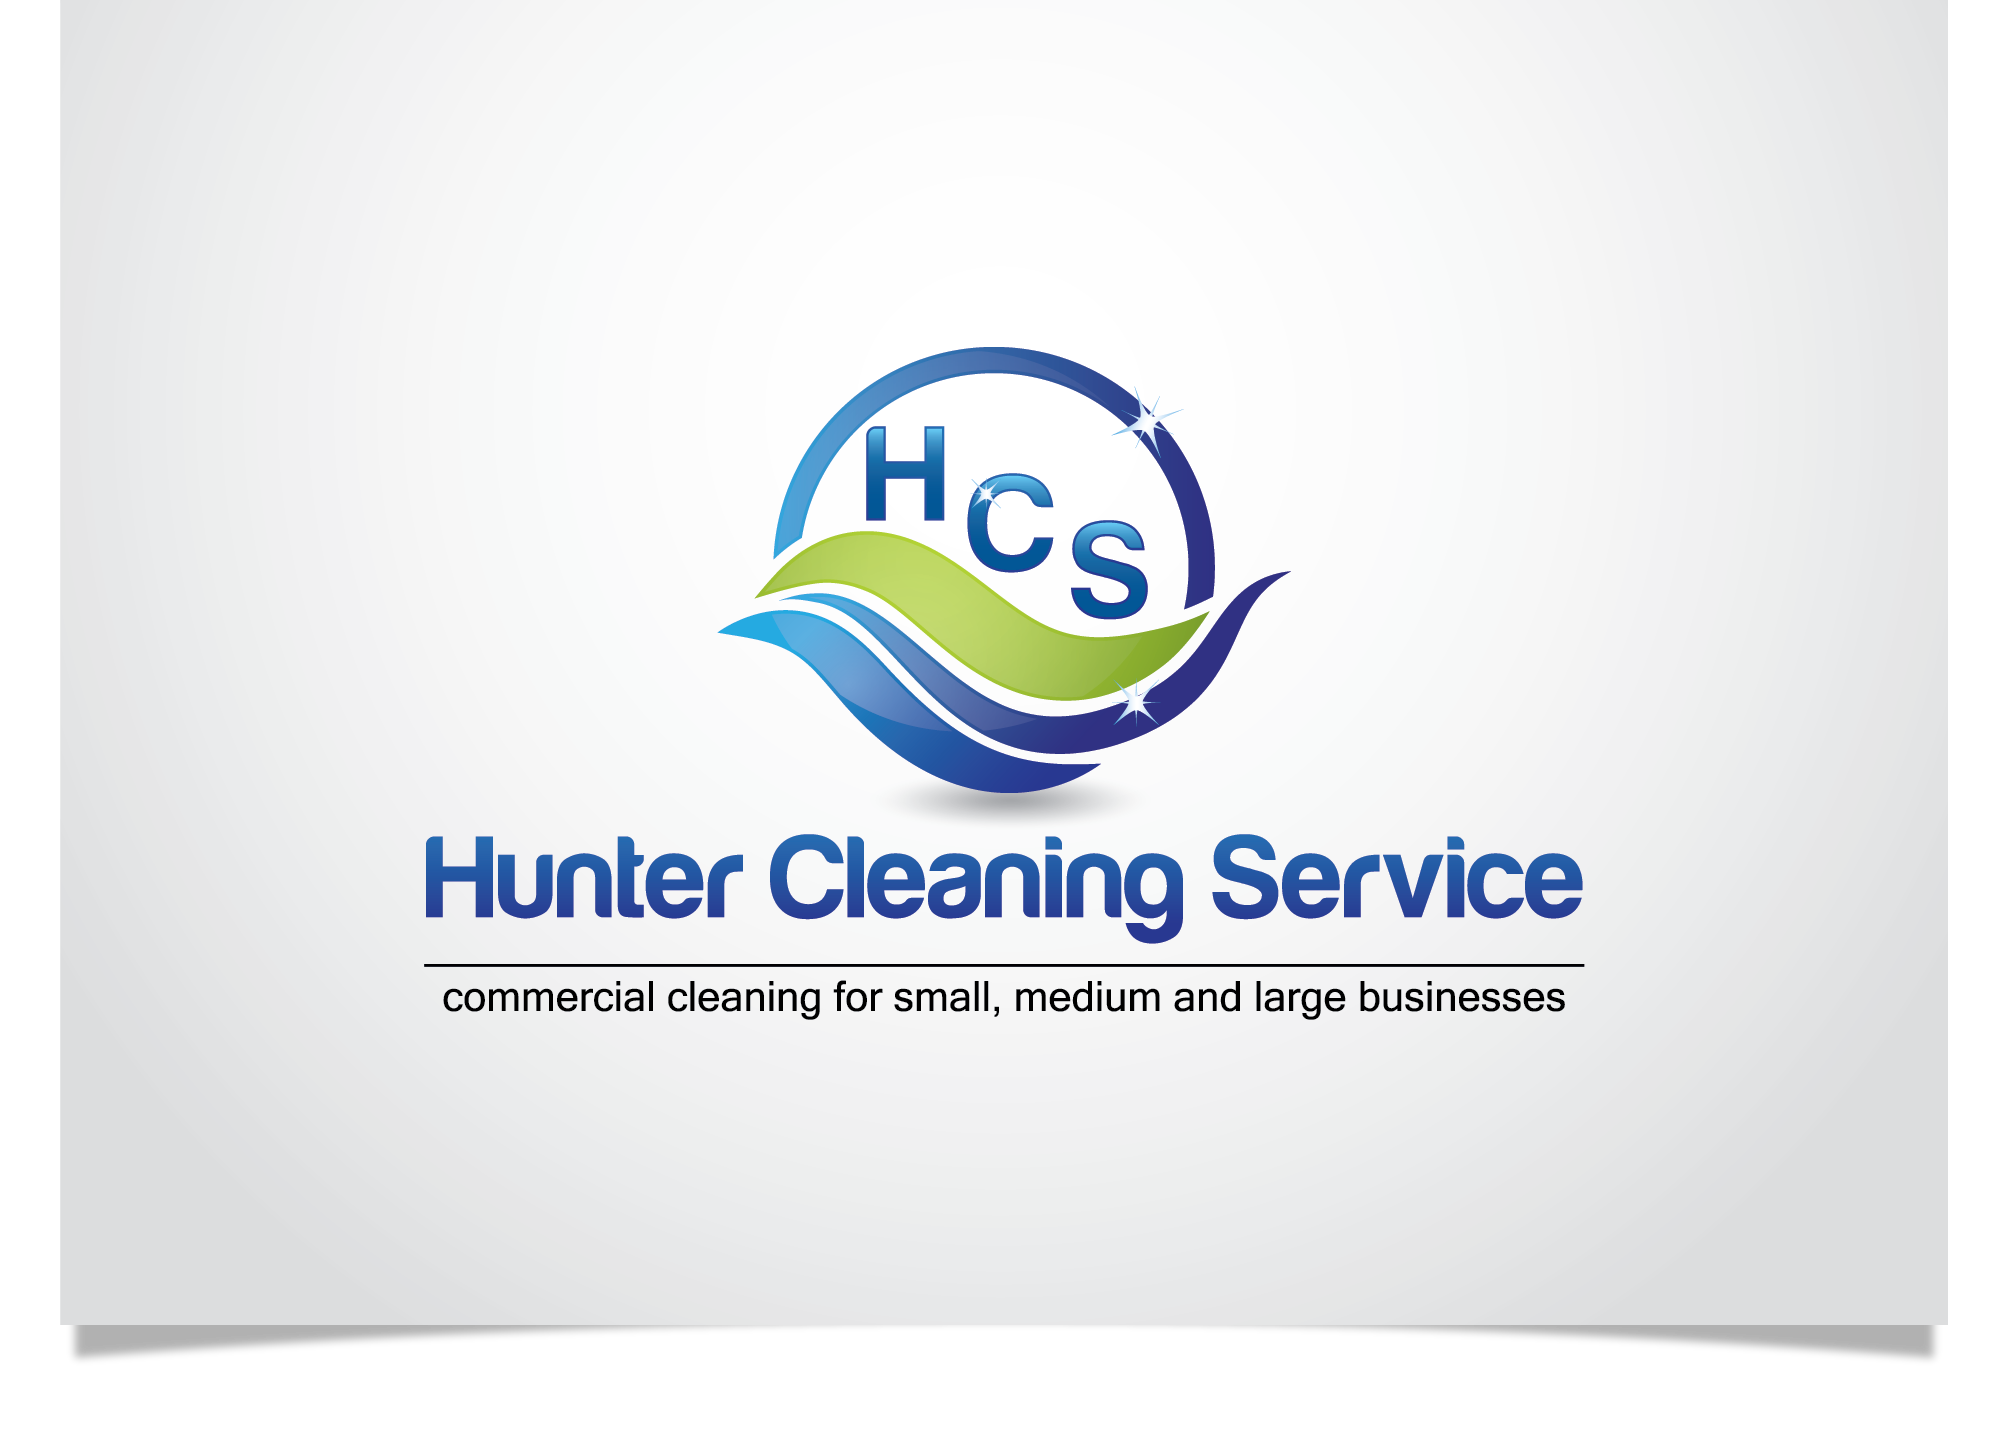 Designs Create the next logo for HCS Hunter Cleaning